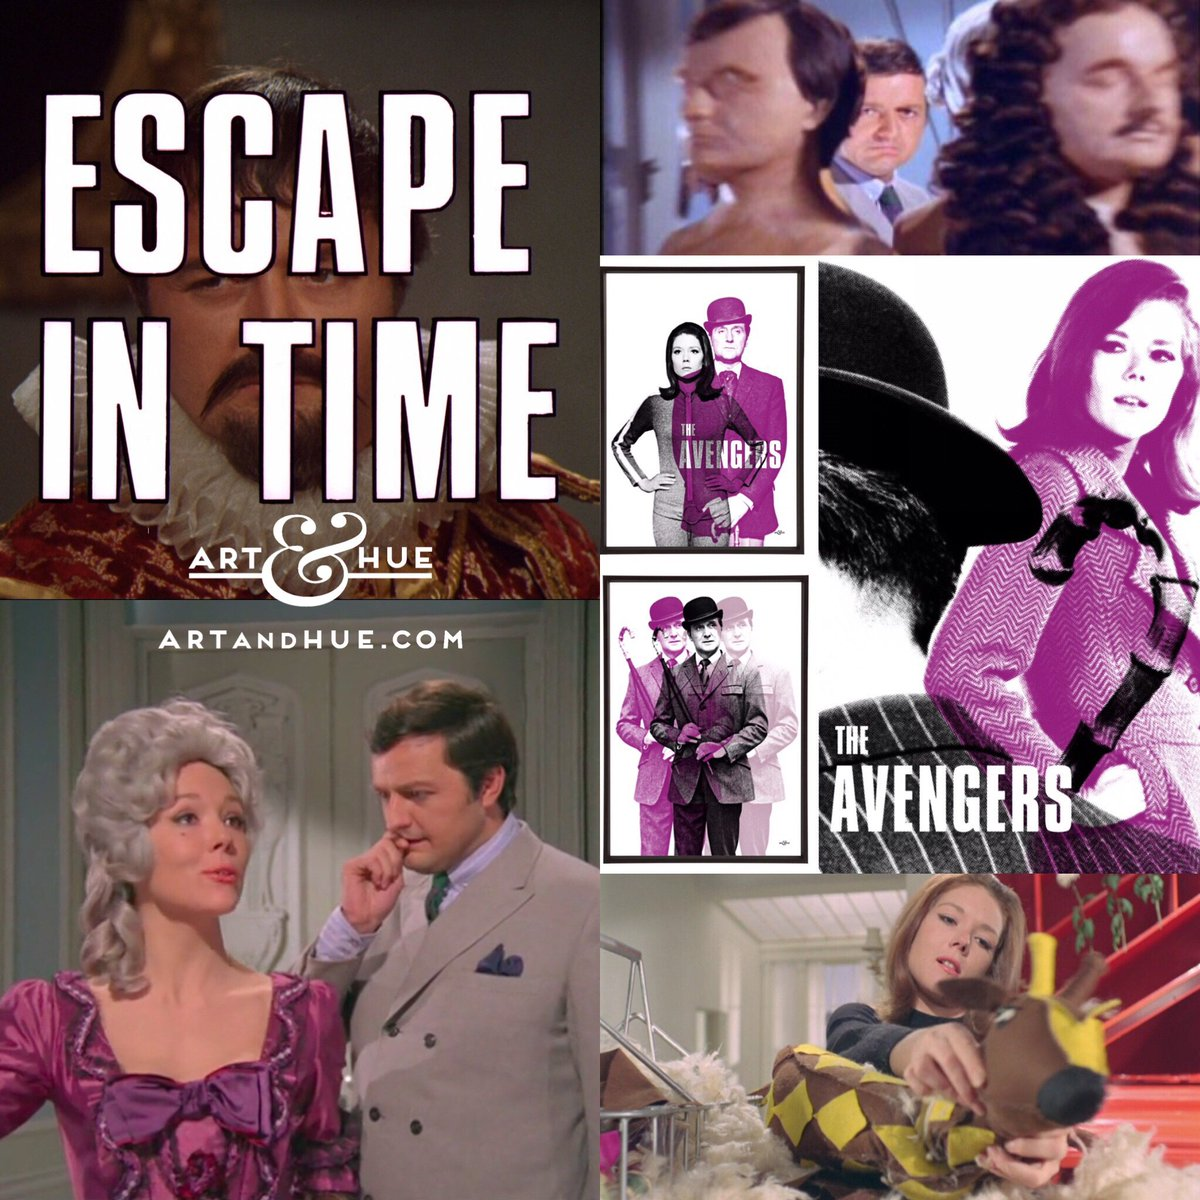 """On this day in 1967, The Avengers episode """"Escape In Time"""" aired on American television for the first time.   http://artandhue.com/theavengers   #dianarigg #mrspeel #patrickmacnee #johnsteed #MadeAtElstree #OnThisDay #OTD #TheAvengers #chapeaumelonetbottesdecuir #EscapeInTime #PeterBowles"""